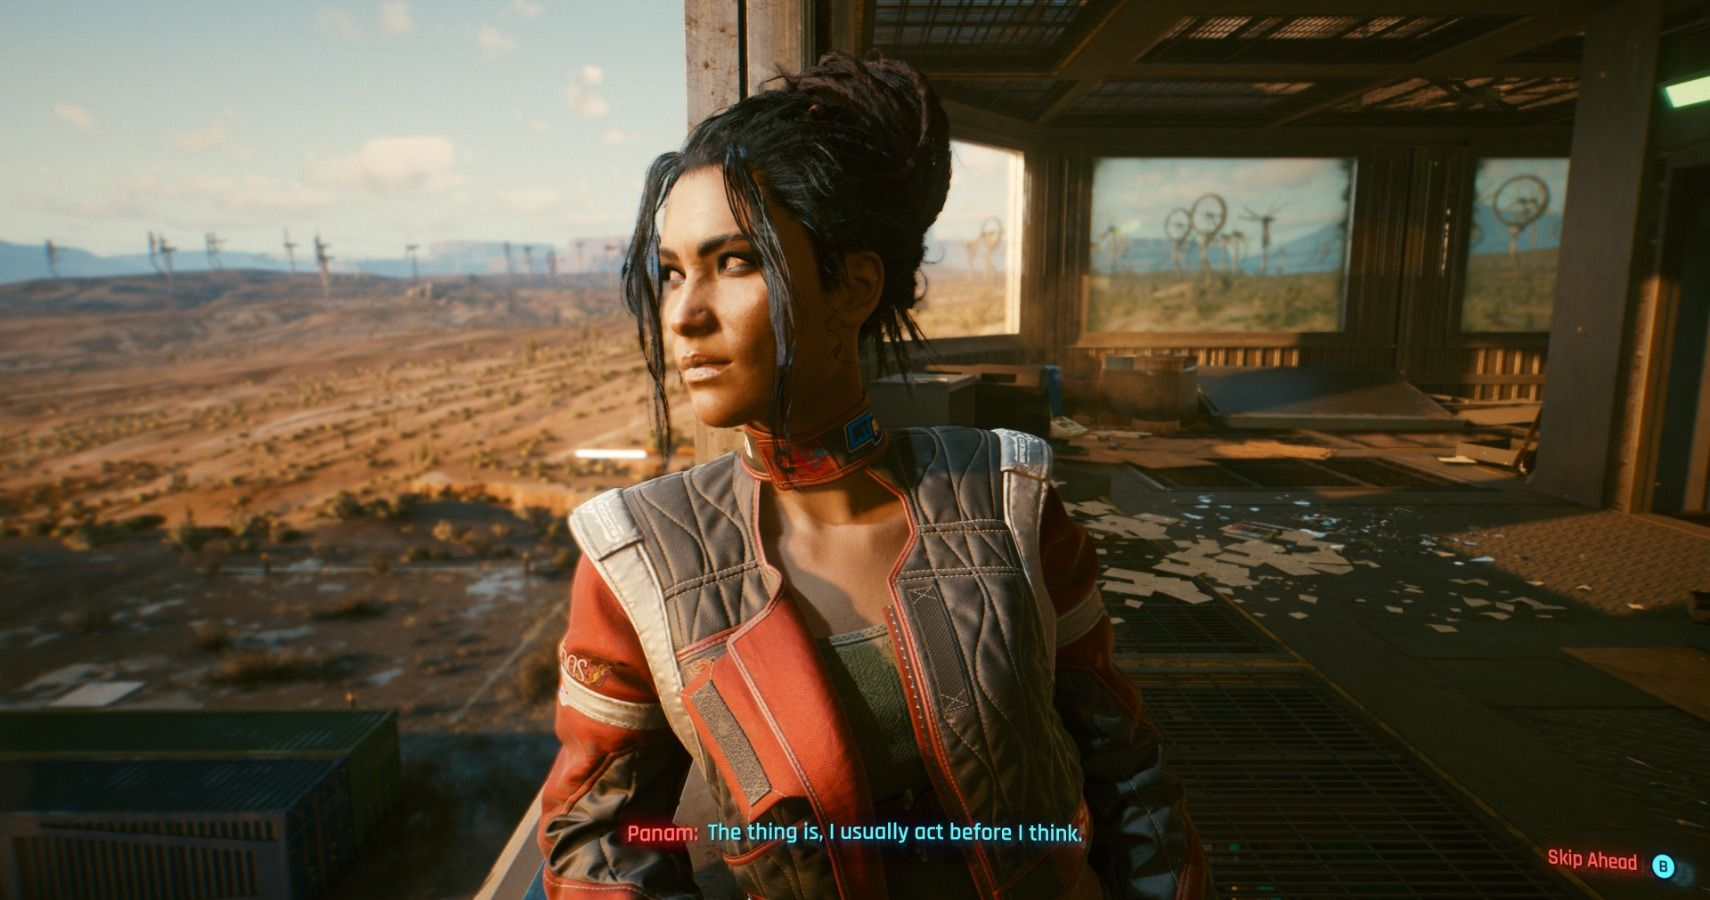 The Biggest Problem With Cyberpunk 2077 Is People's Unrealistic Expectations